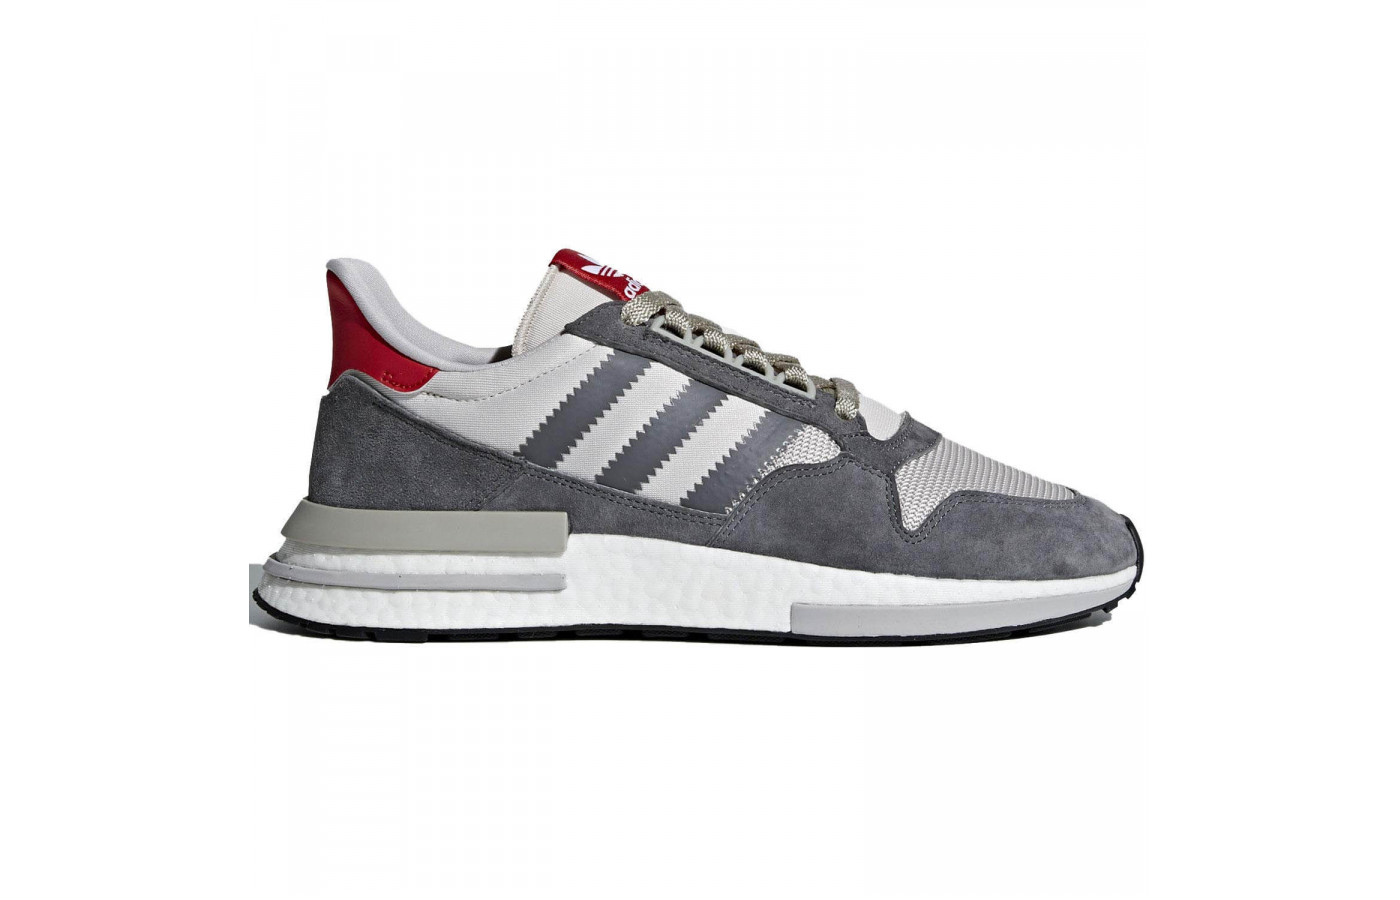 acheter populaire 314f3 71241 Adidas ZX 500 RM